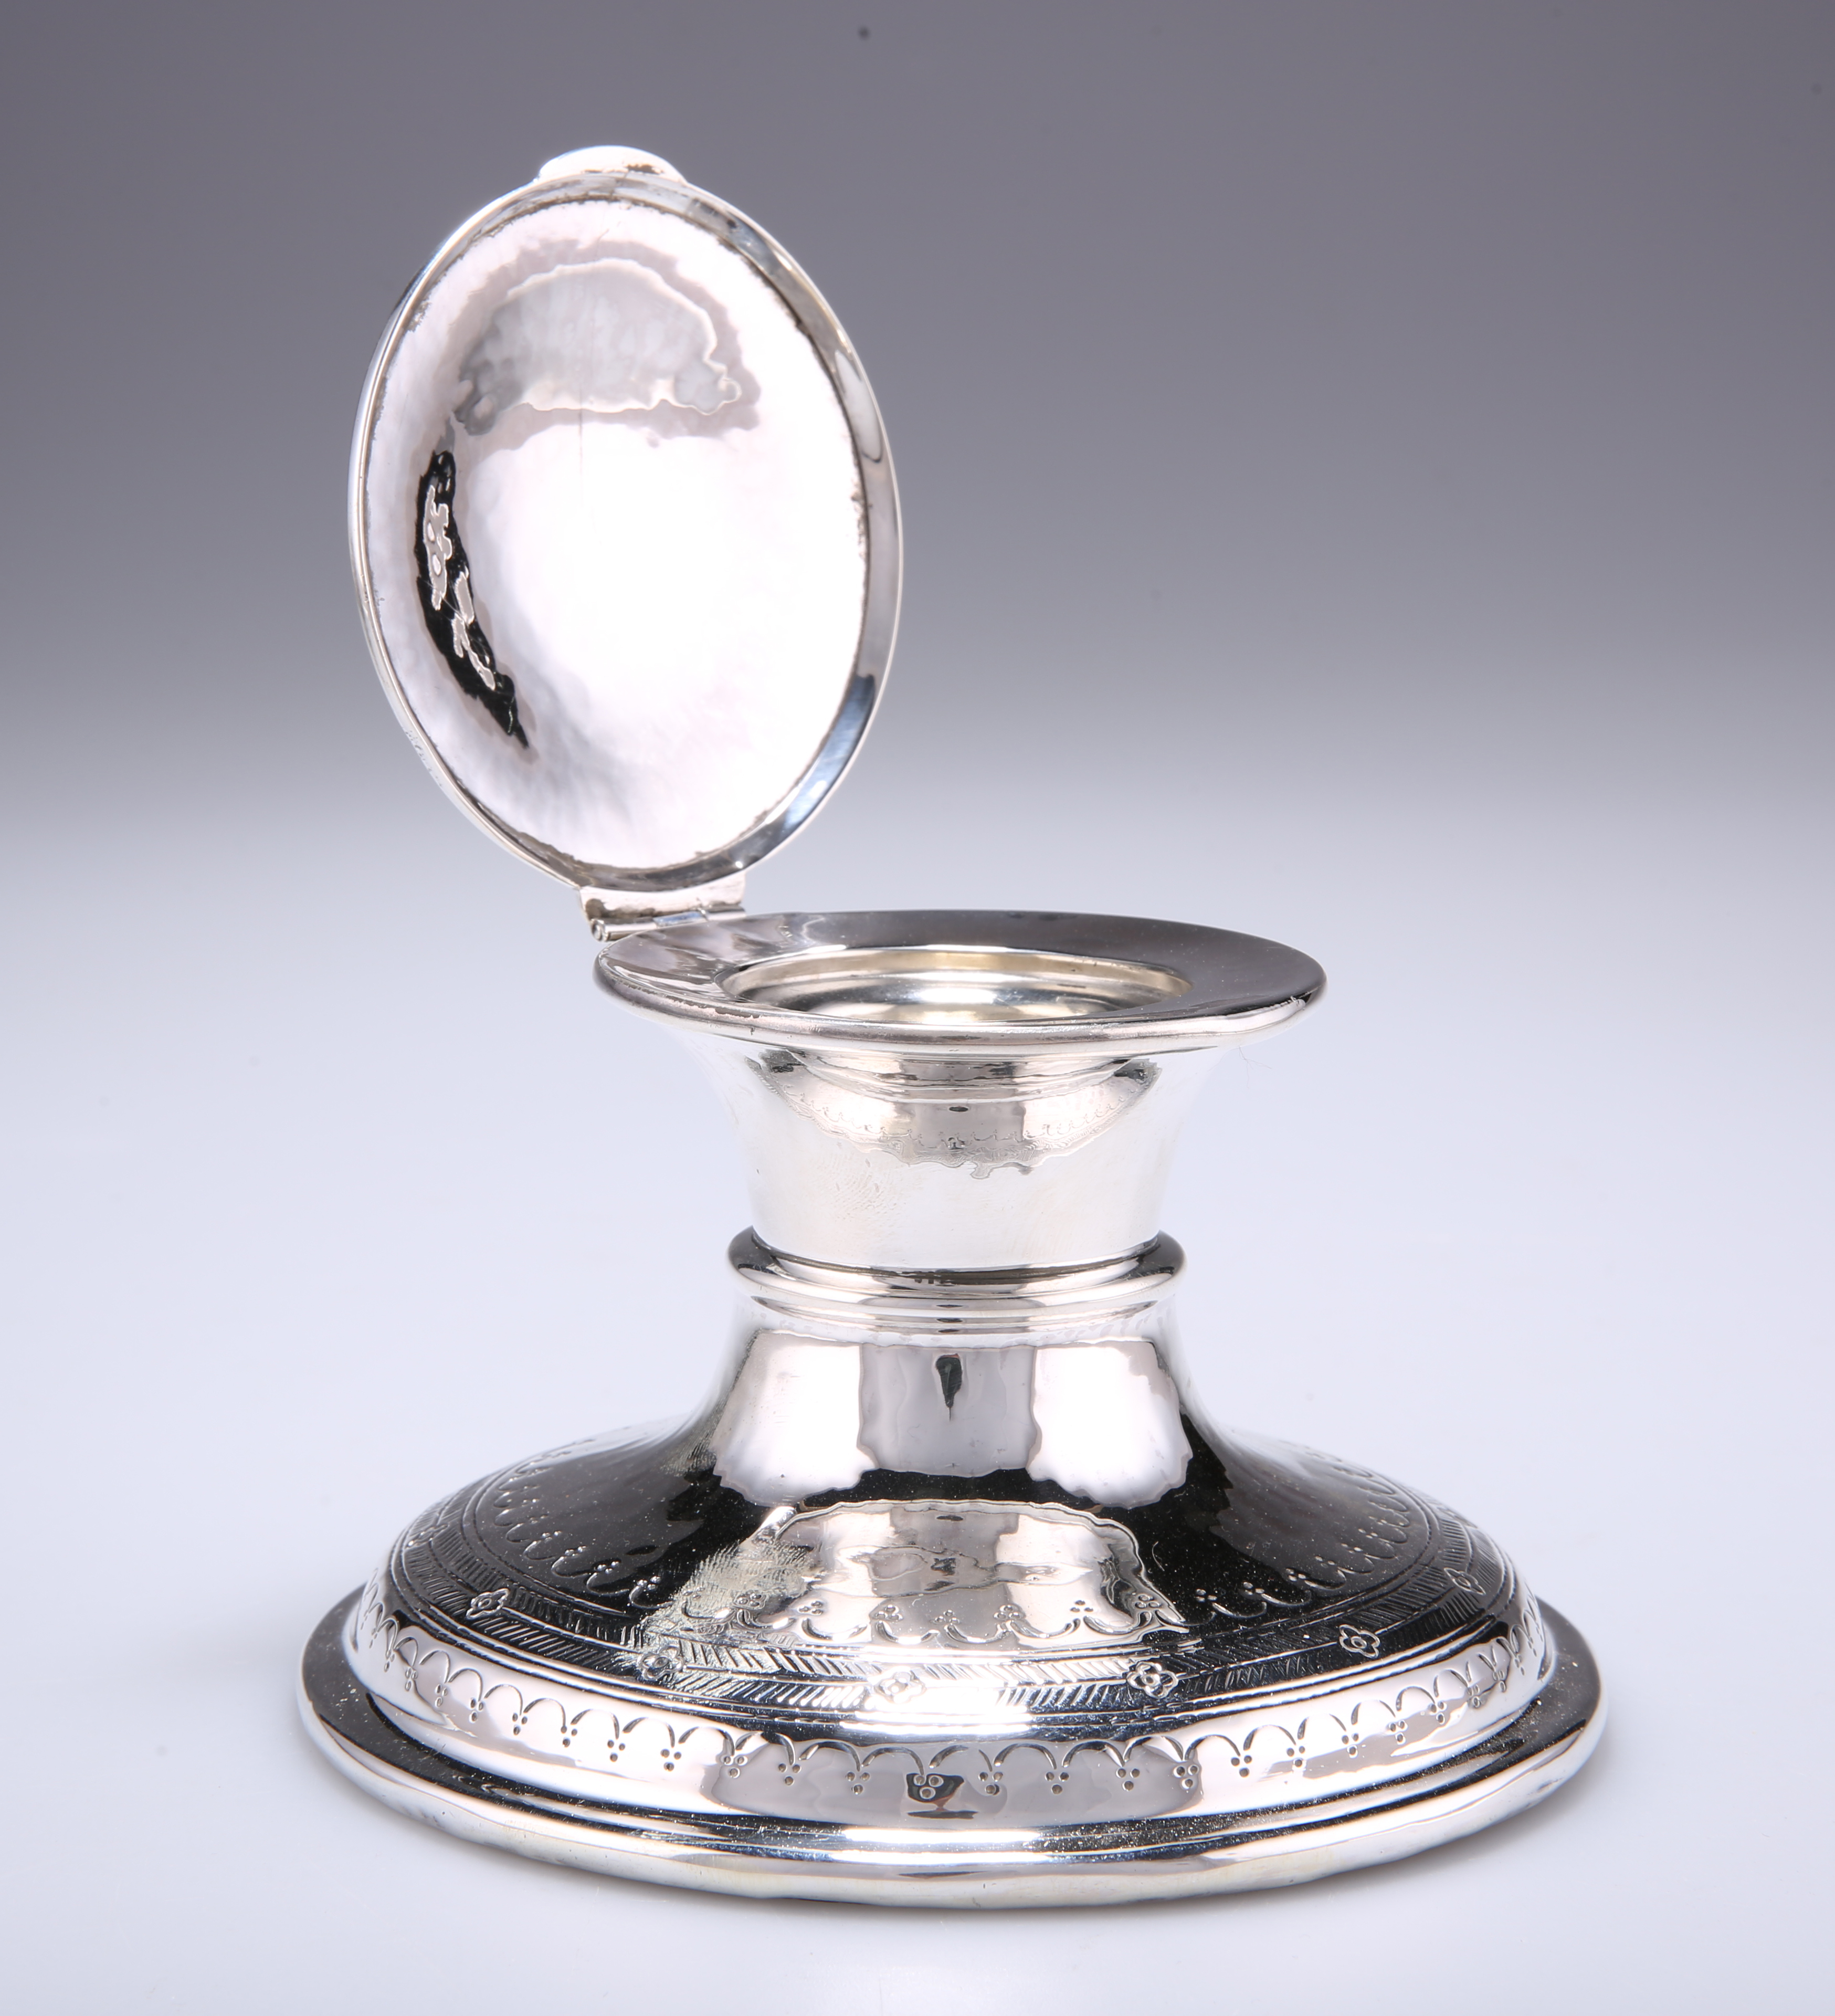 A GEORGE V SILVER CAPSTAN INKWELL - Image 2 of 2